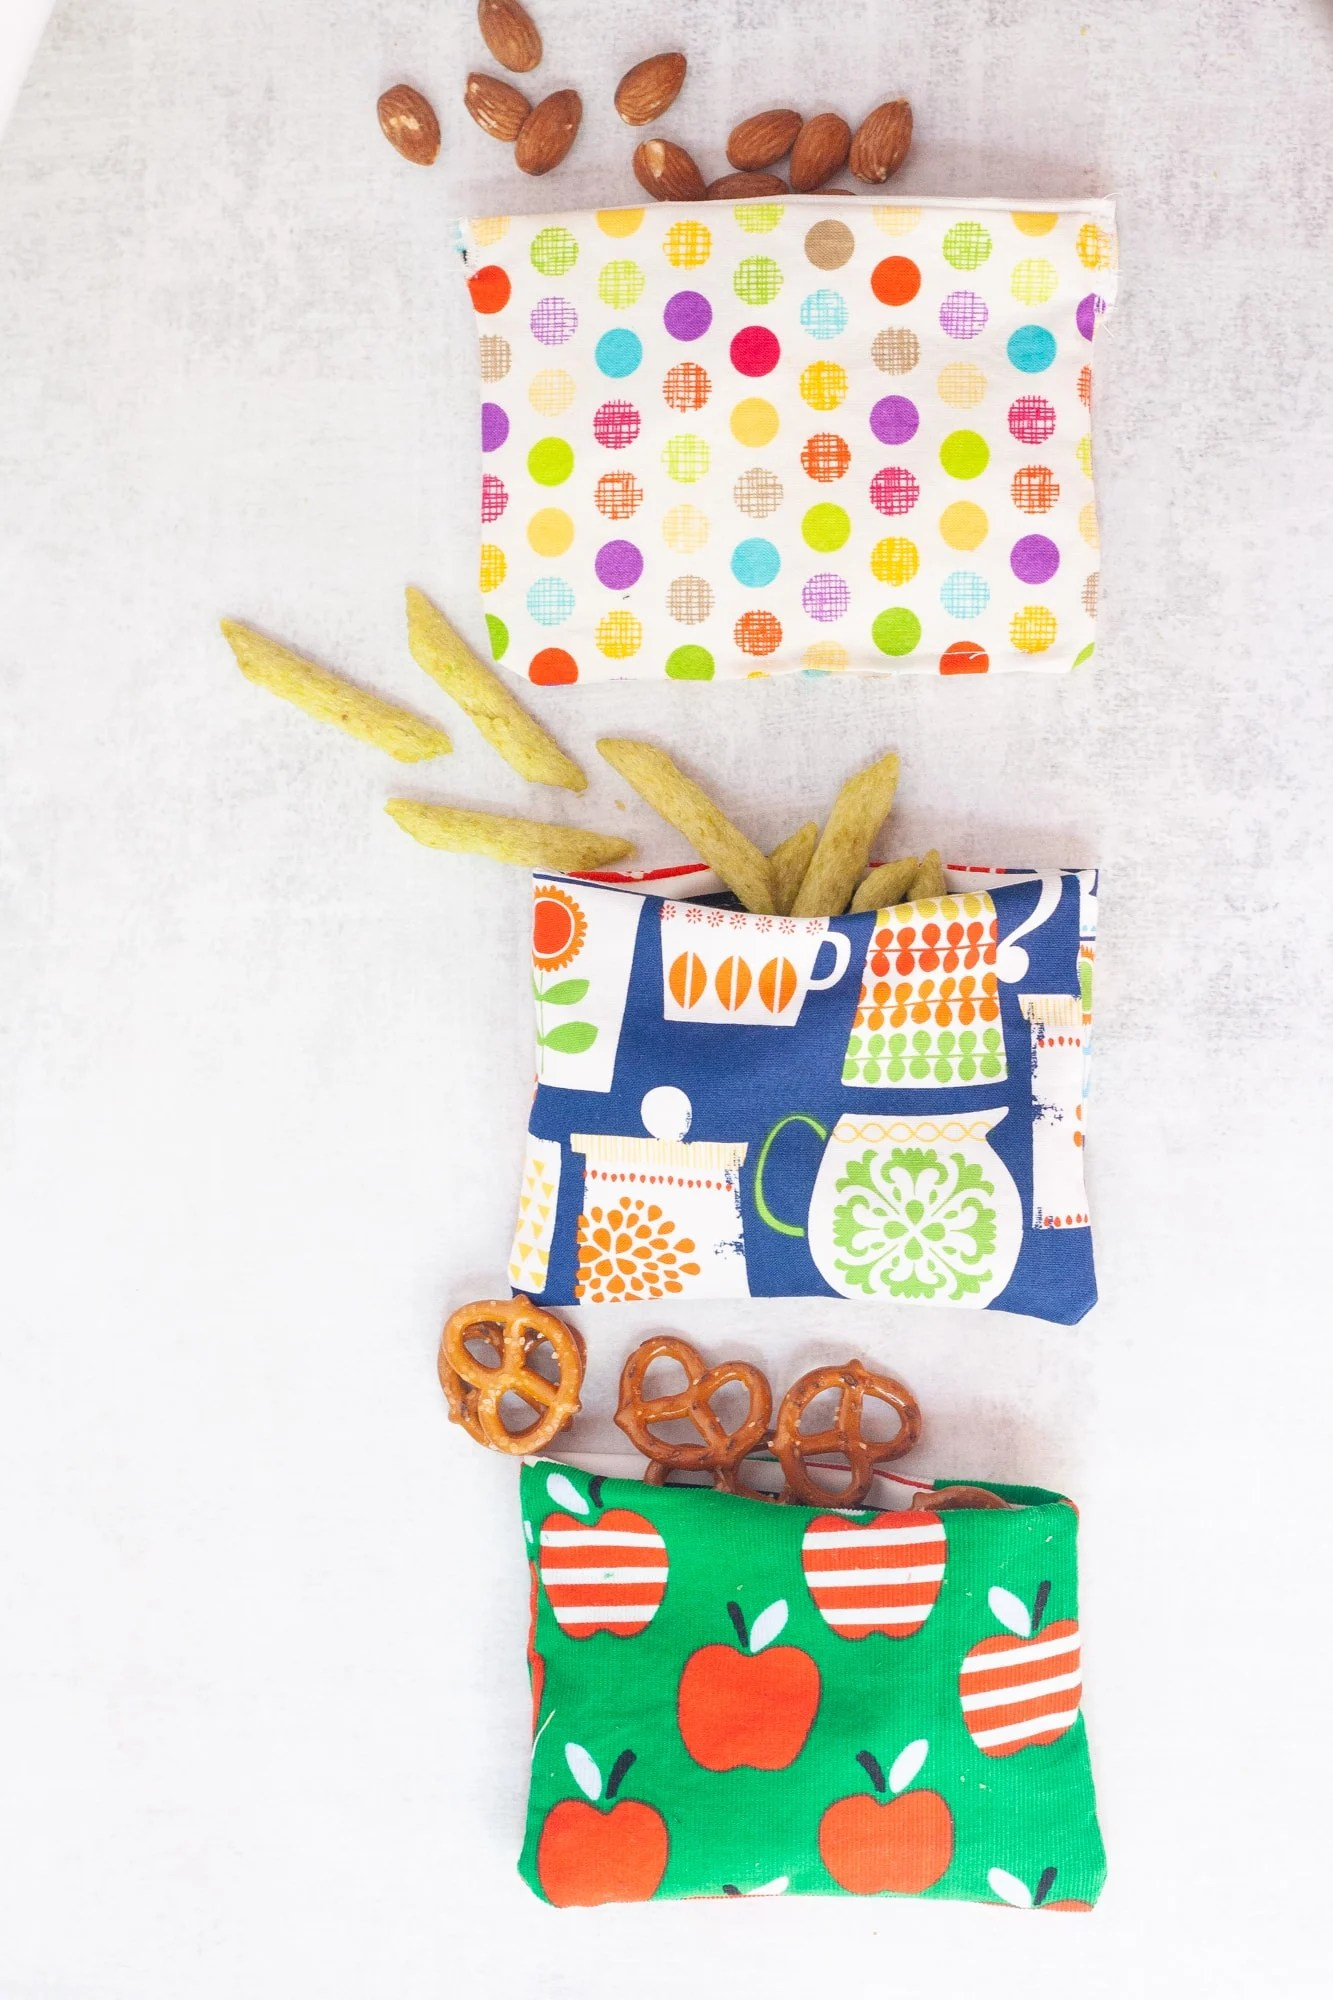 Three reusable snack bags lined up, each spilling out a different snack - pretzels, almonds, and crispy snap peas